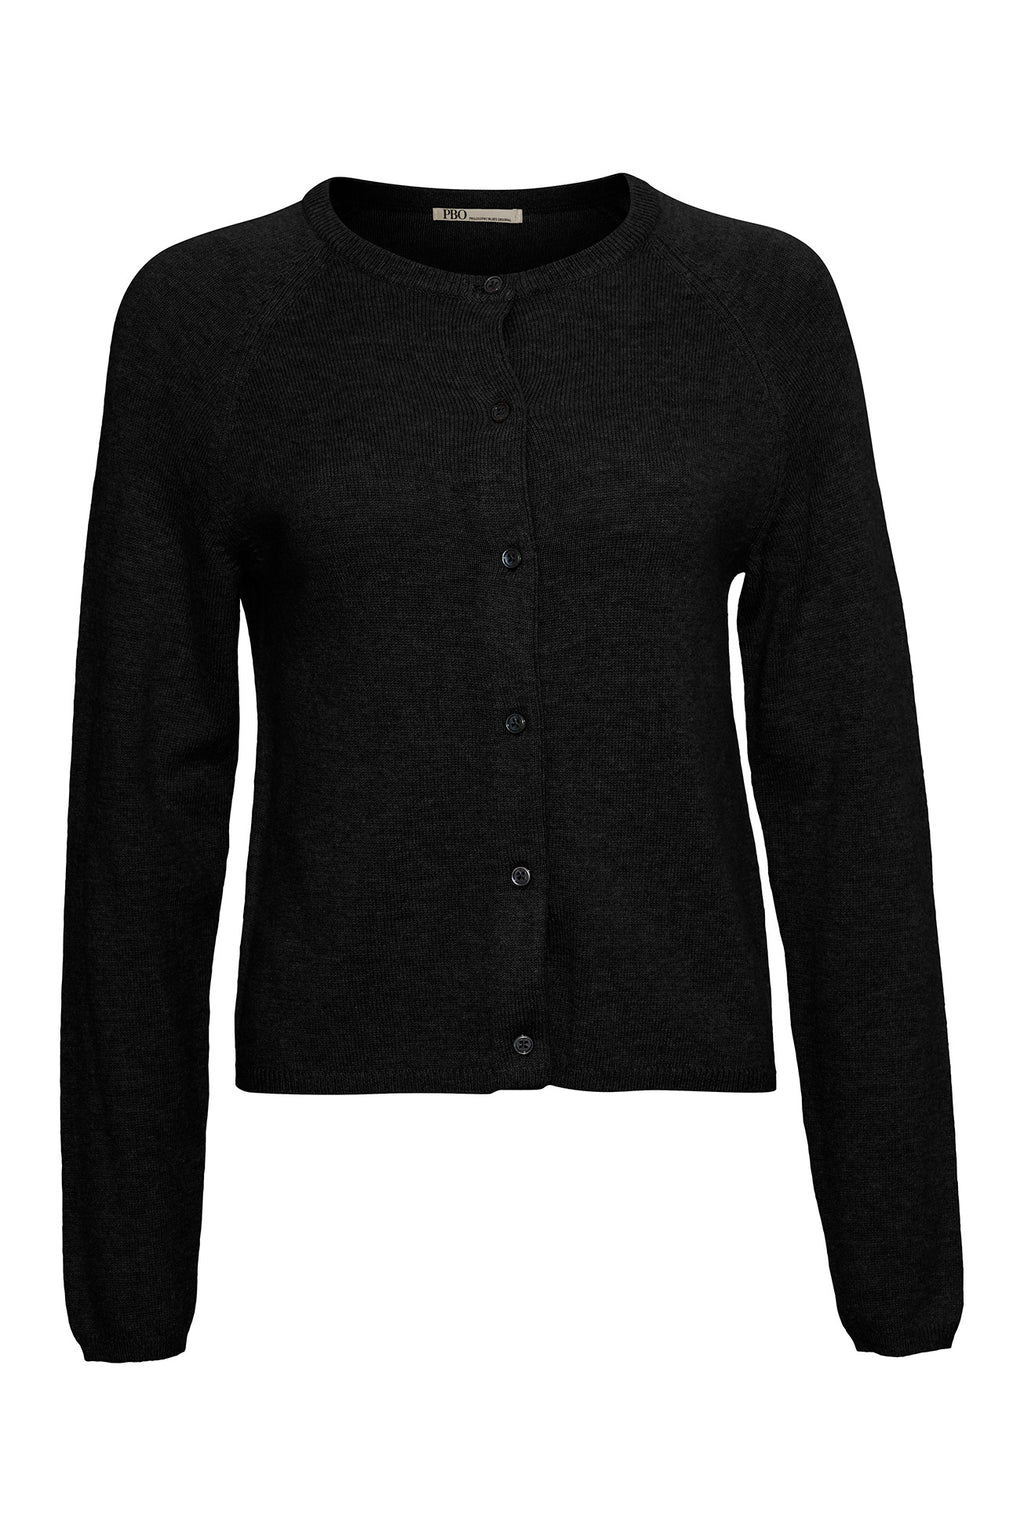 PBO strikcardigan Nolana sort